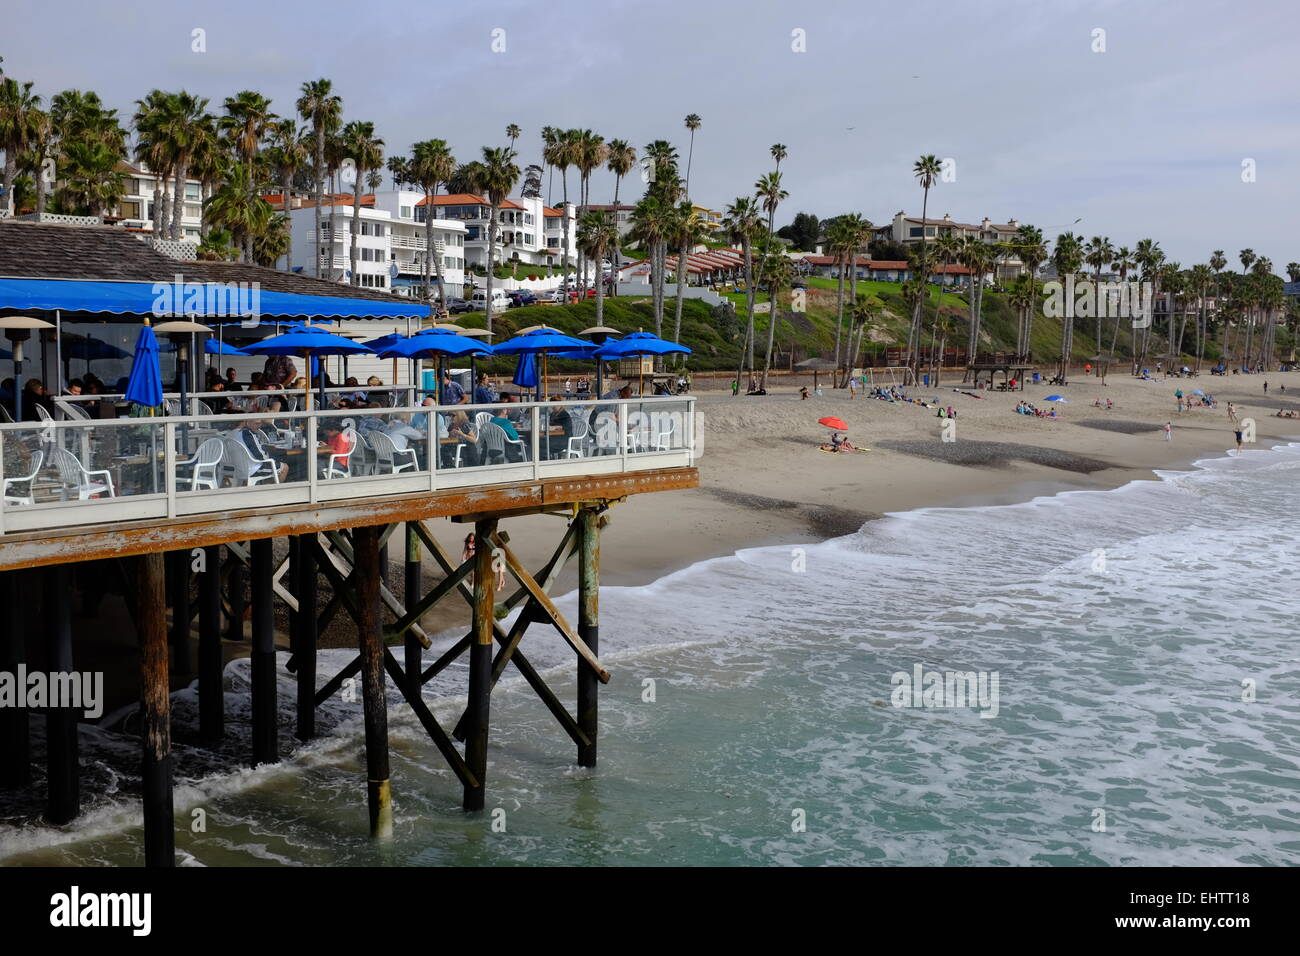 San Clemente Pier, San Clemente, CA, and surrounding area Stock Photo